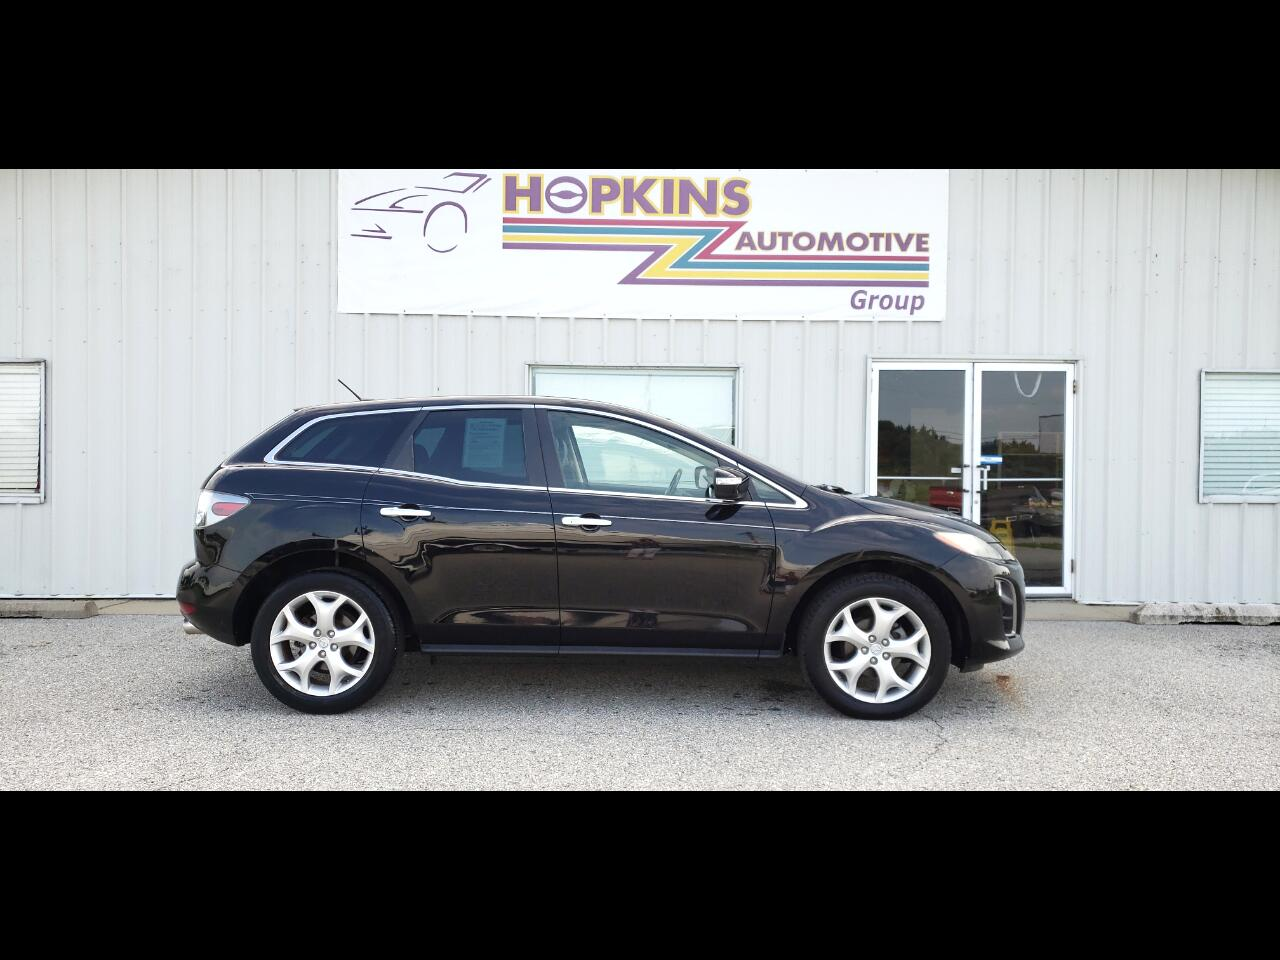 2011 Mazda CX-7 FWD 4dr s Grand Touring